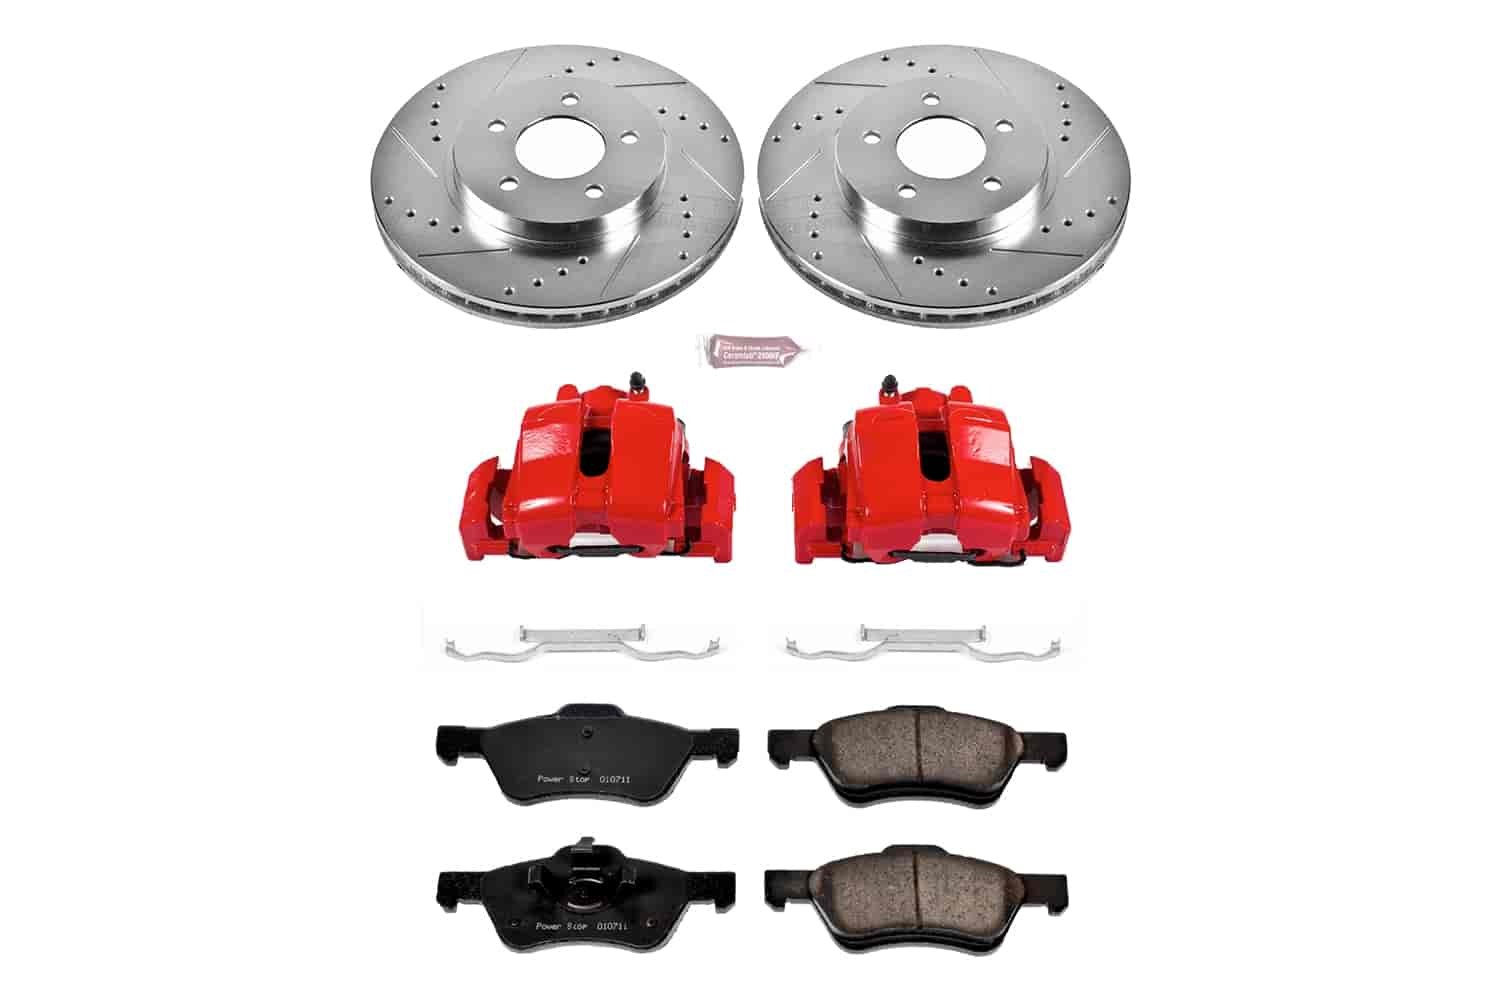 Power Stop Kc4580 1 Click Kit W Calipers Front 2005 2006